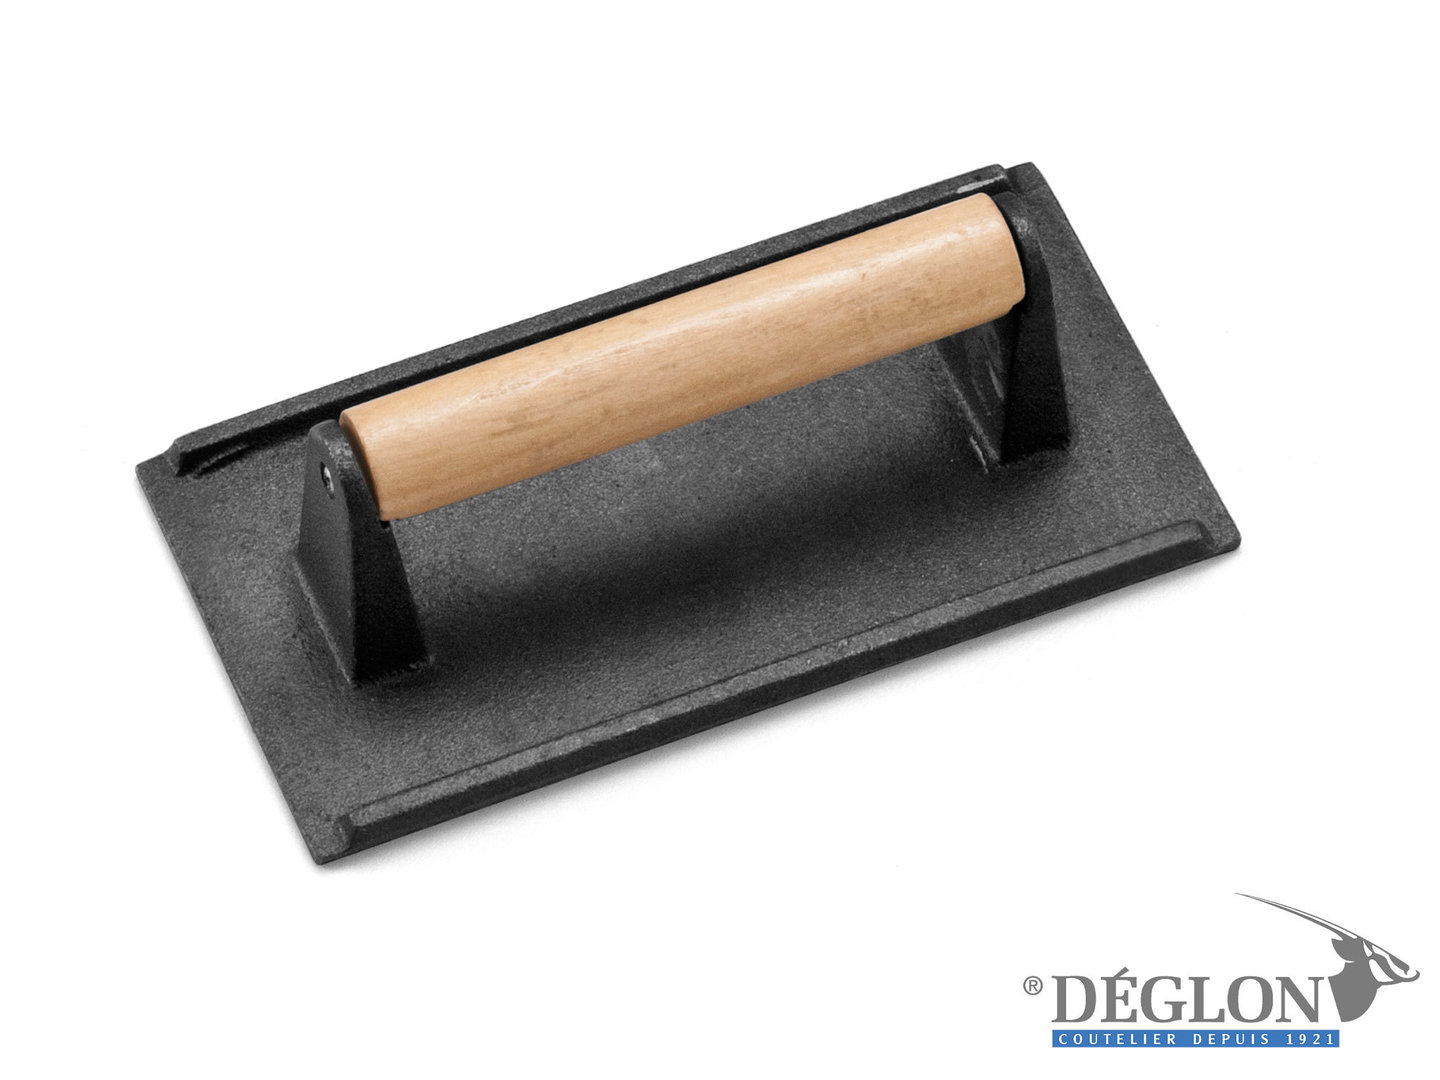 DÉGLON cast iron griddle press with wooden handle